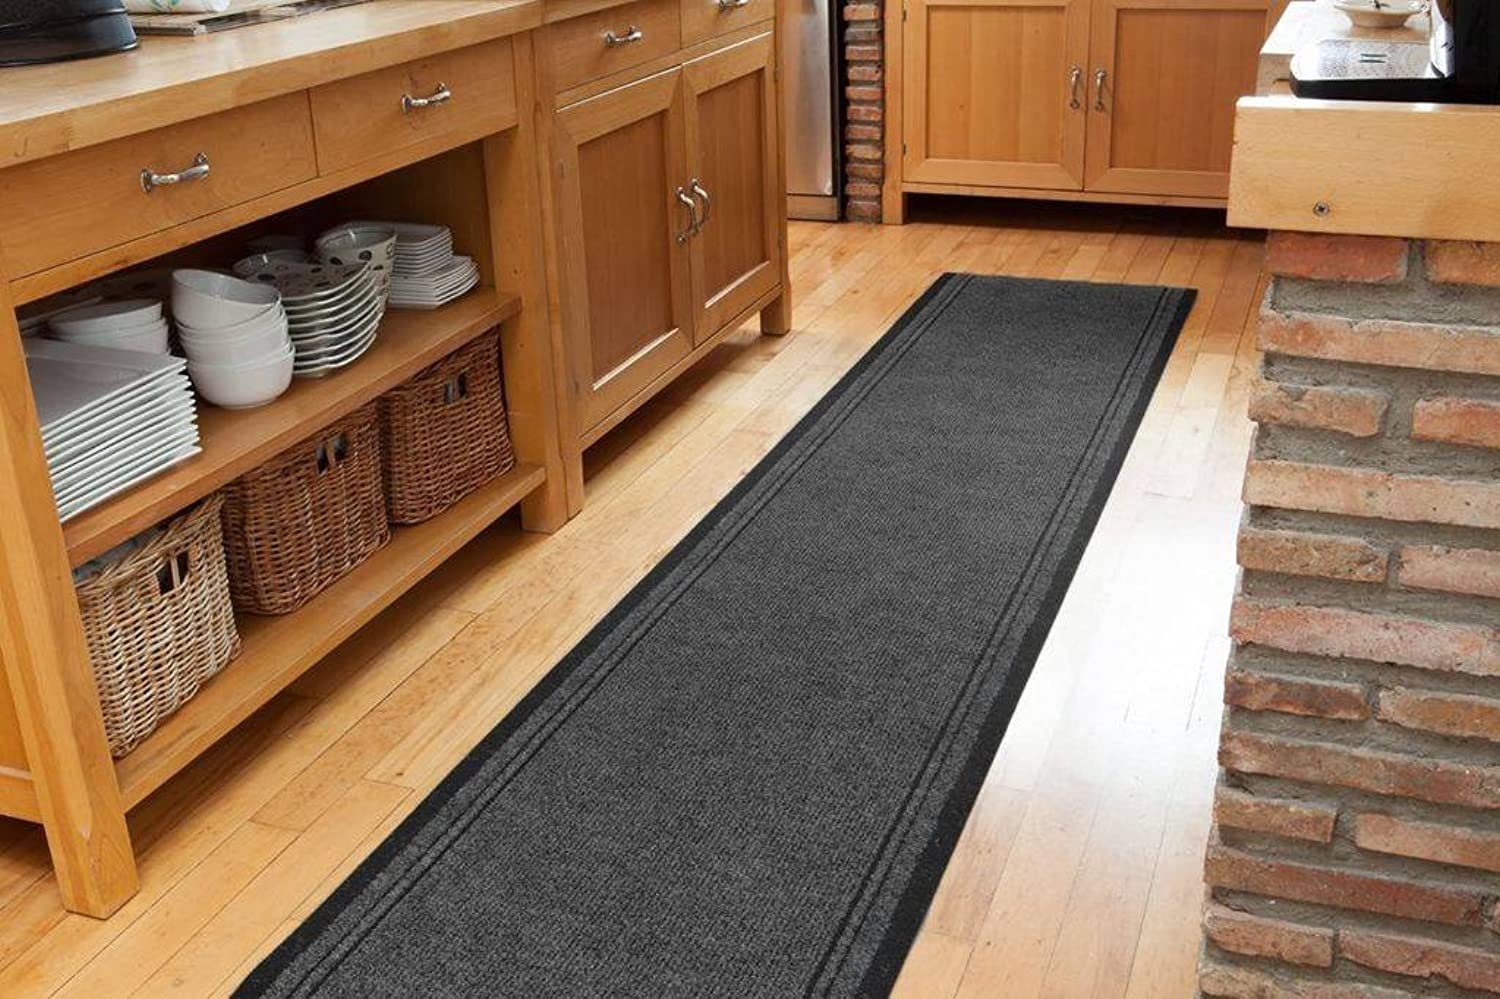 The Rug House Plain Grey Rubber Backed Very Long Hallway Runner Rugs - Sold And Priced Per Foot - 2' 2  Wide